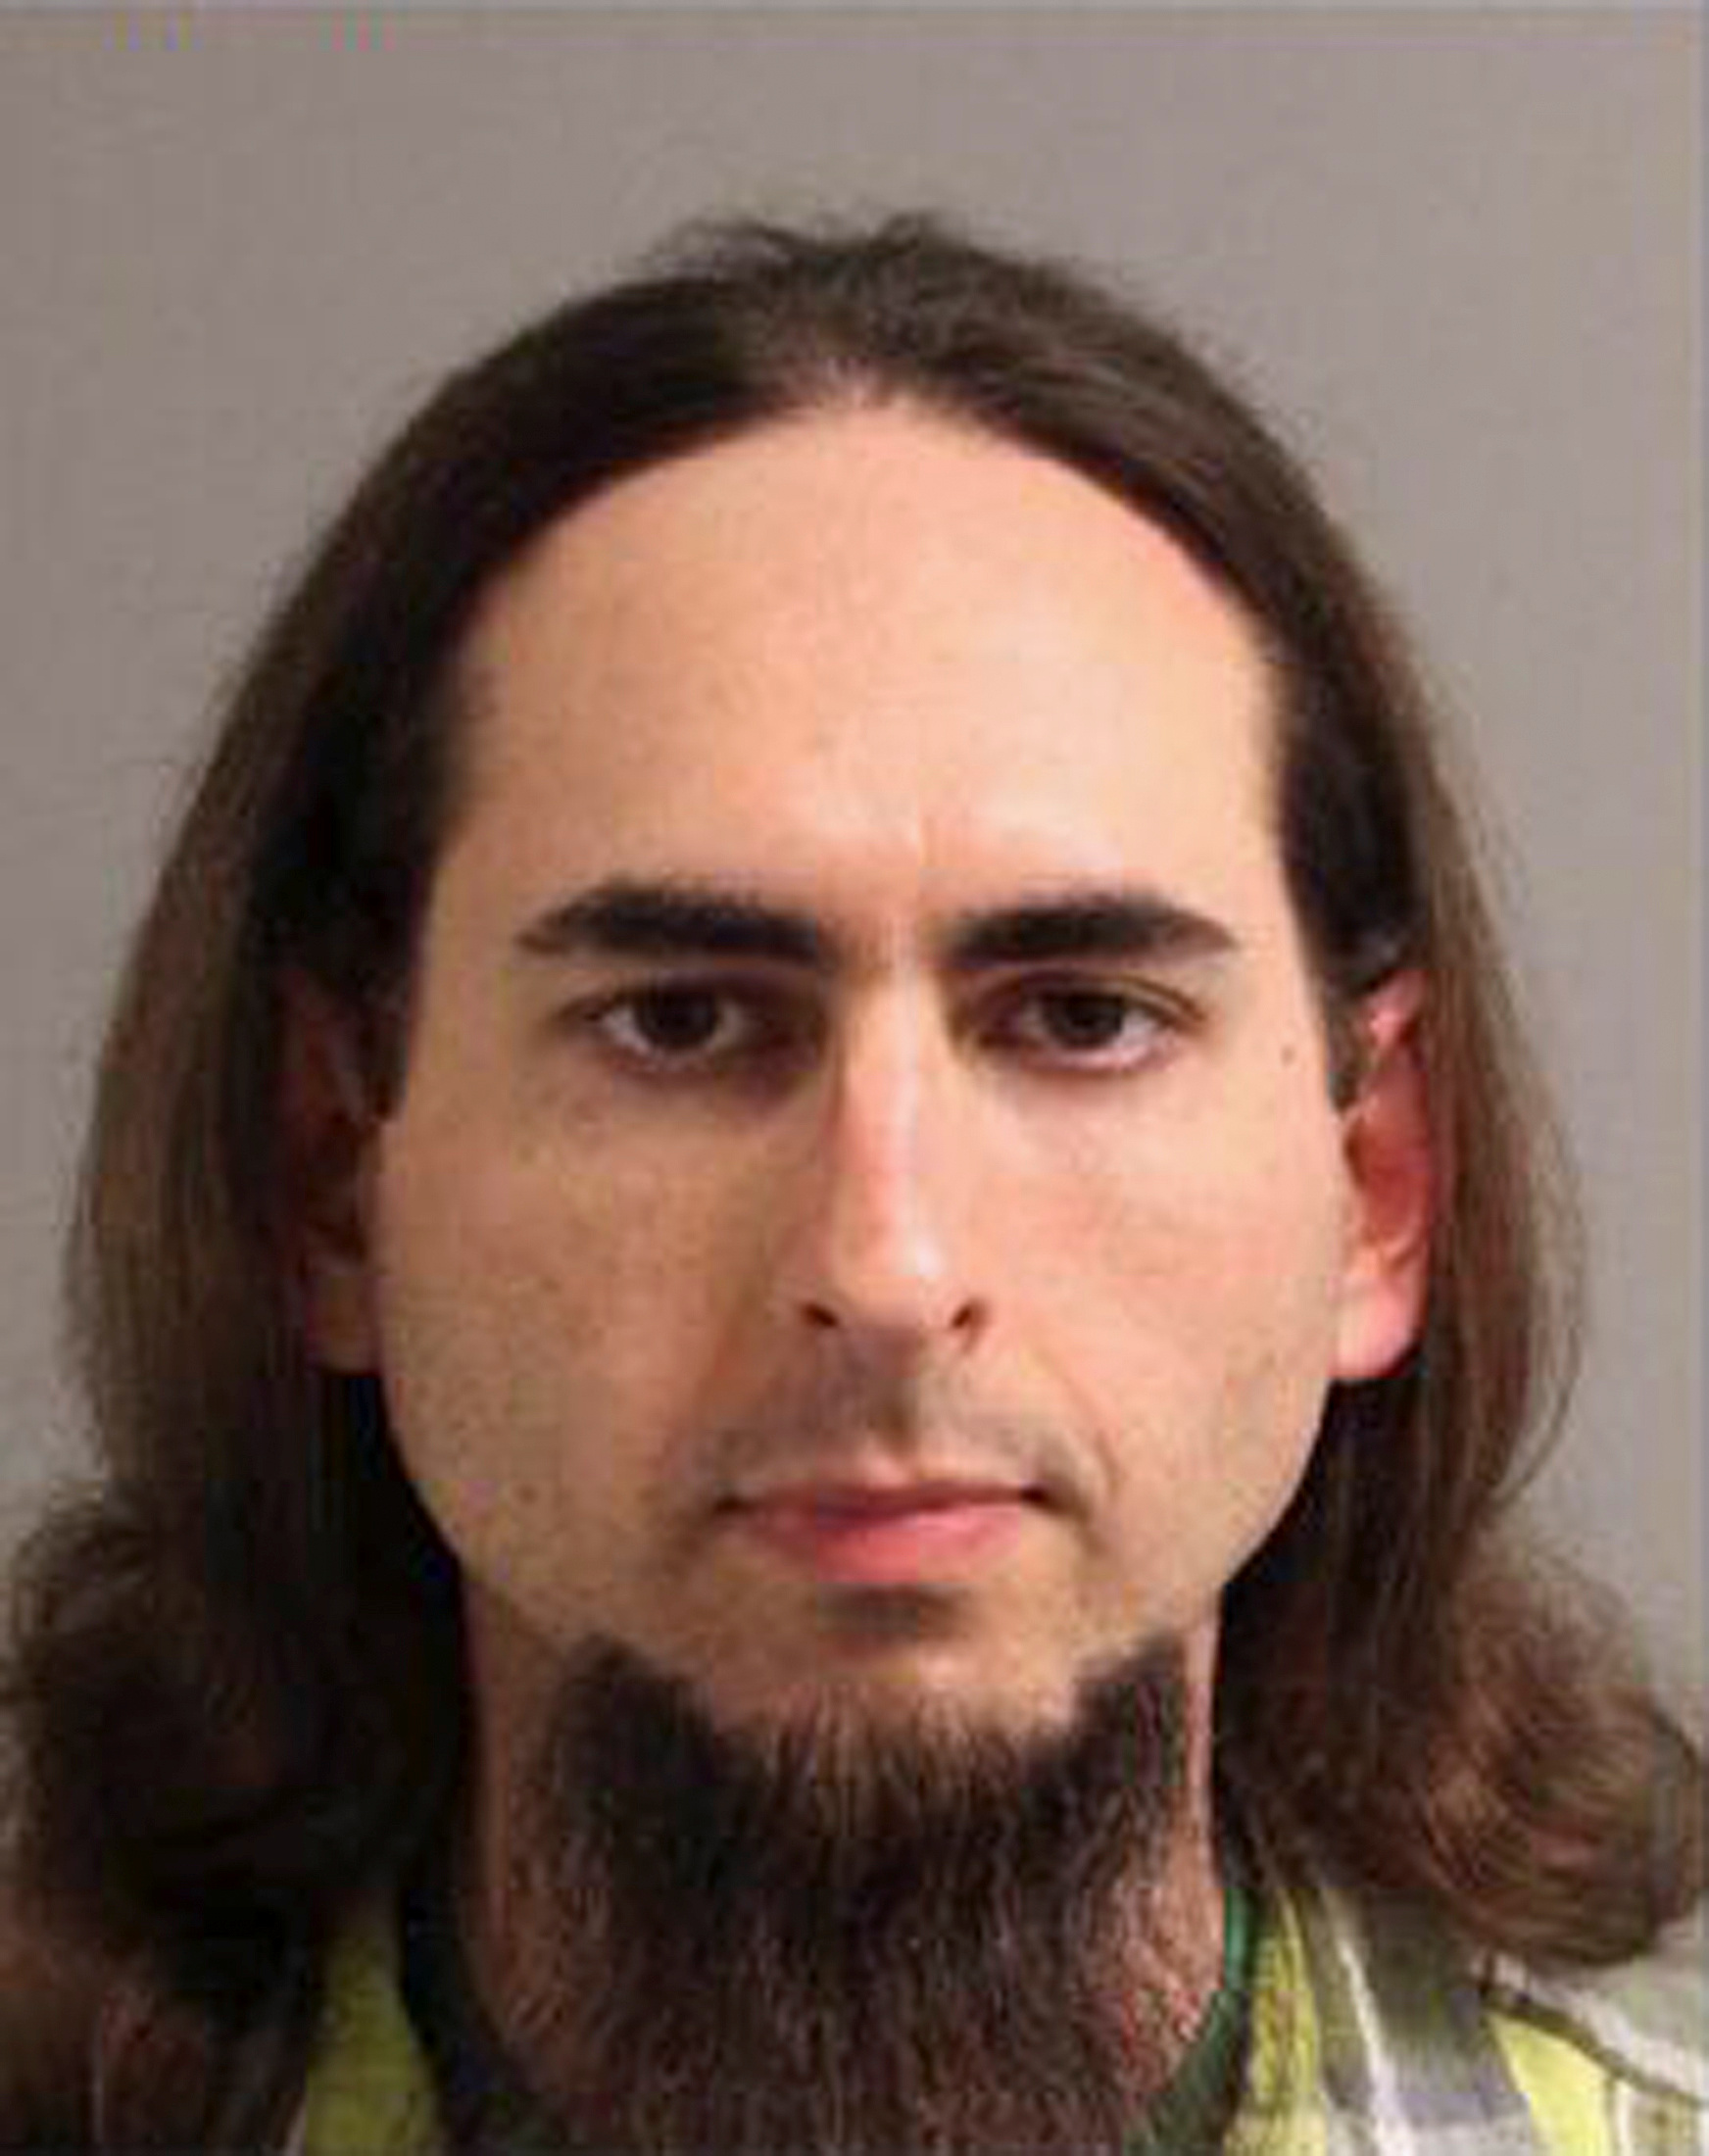 Jarrod Ramos, suspected of killing five people at the offices of the Capital Gazette newspaper office in Annapolis, Maryland on June 28, 2018 is seen in this 2013 Anne Arundel Police Department booking photo obtained from social media.